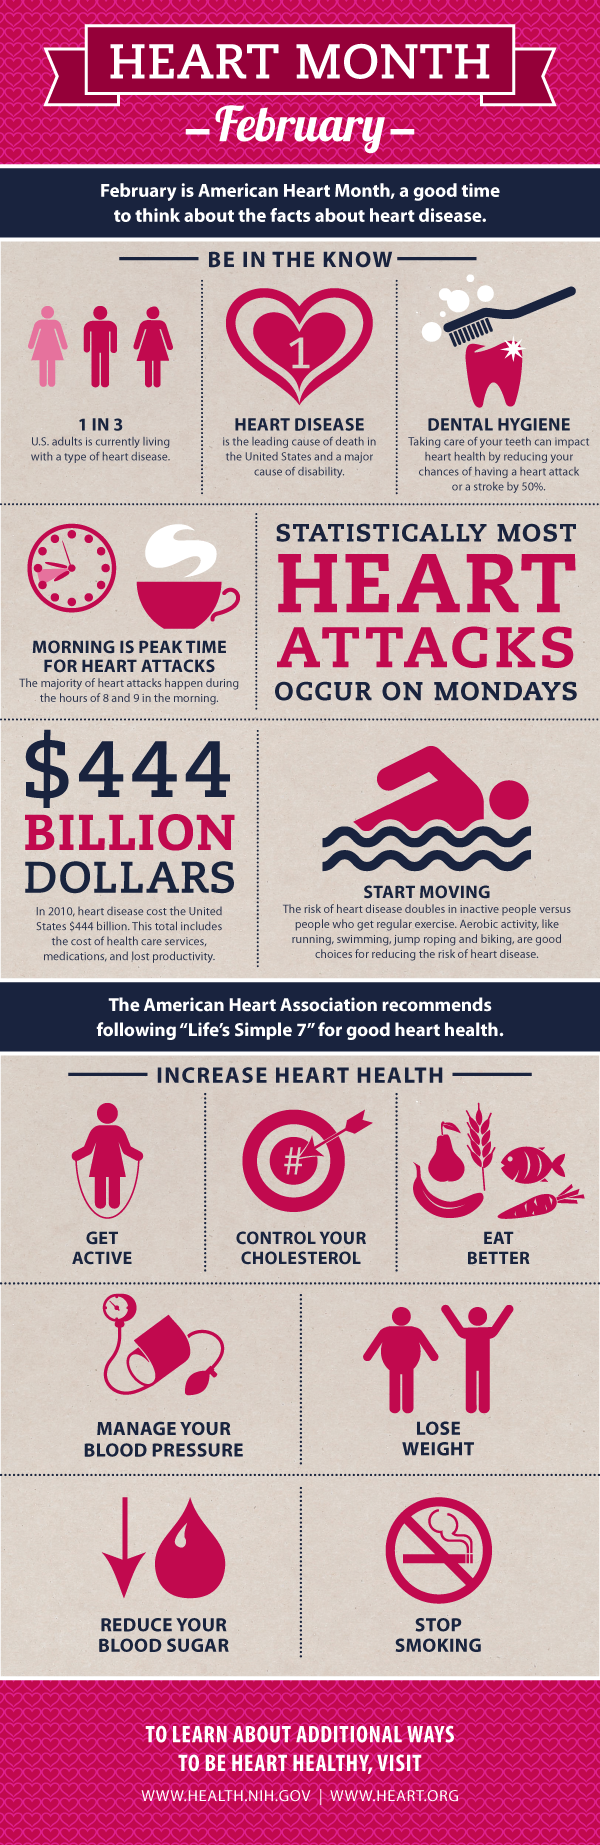 01 heartmonth_blog